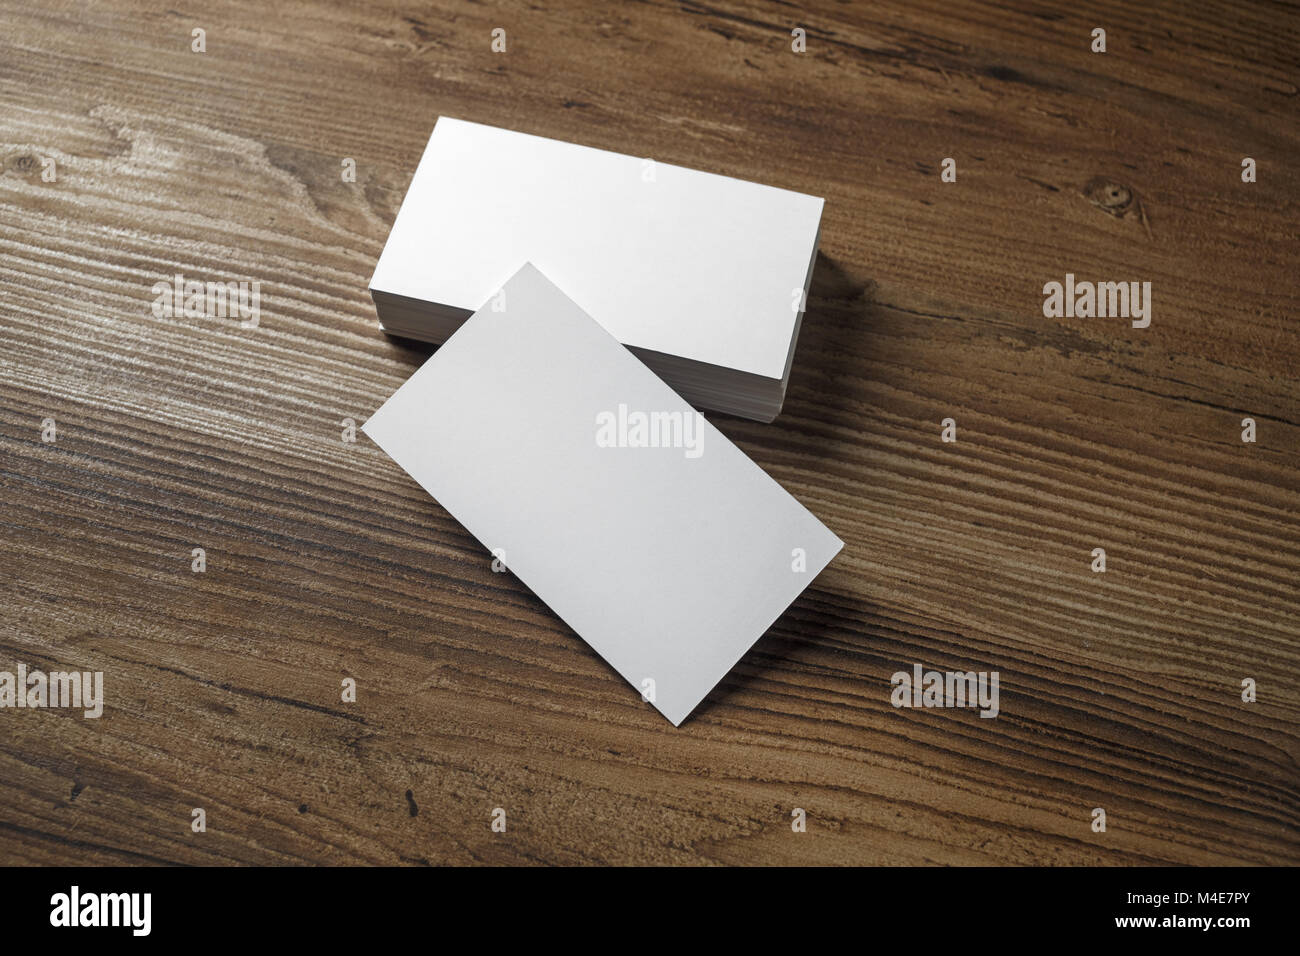 White bussiness cards - Stock Image